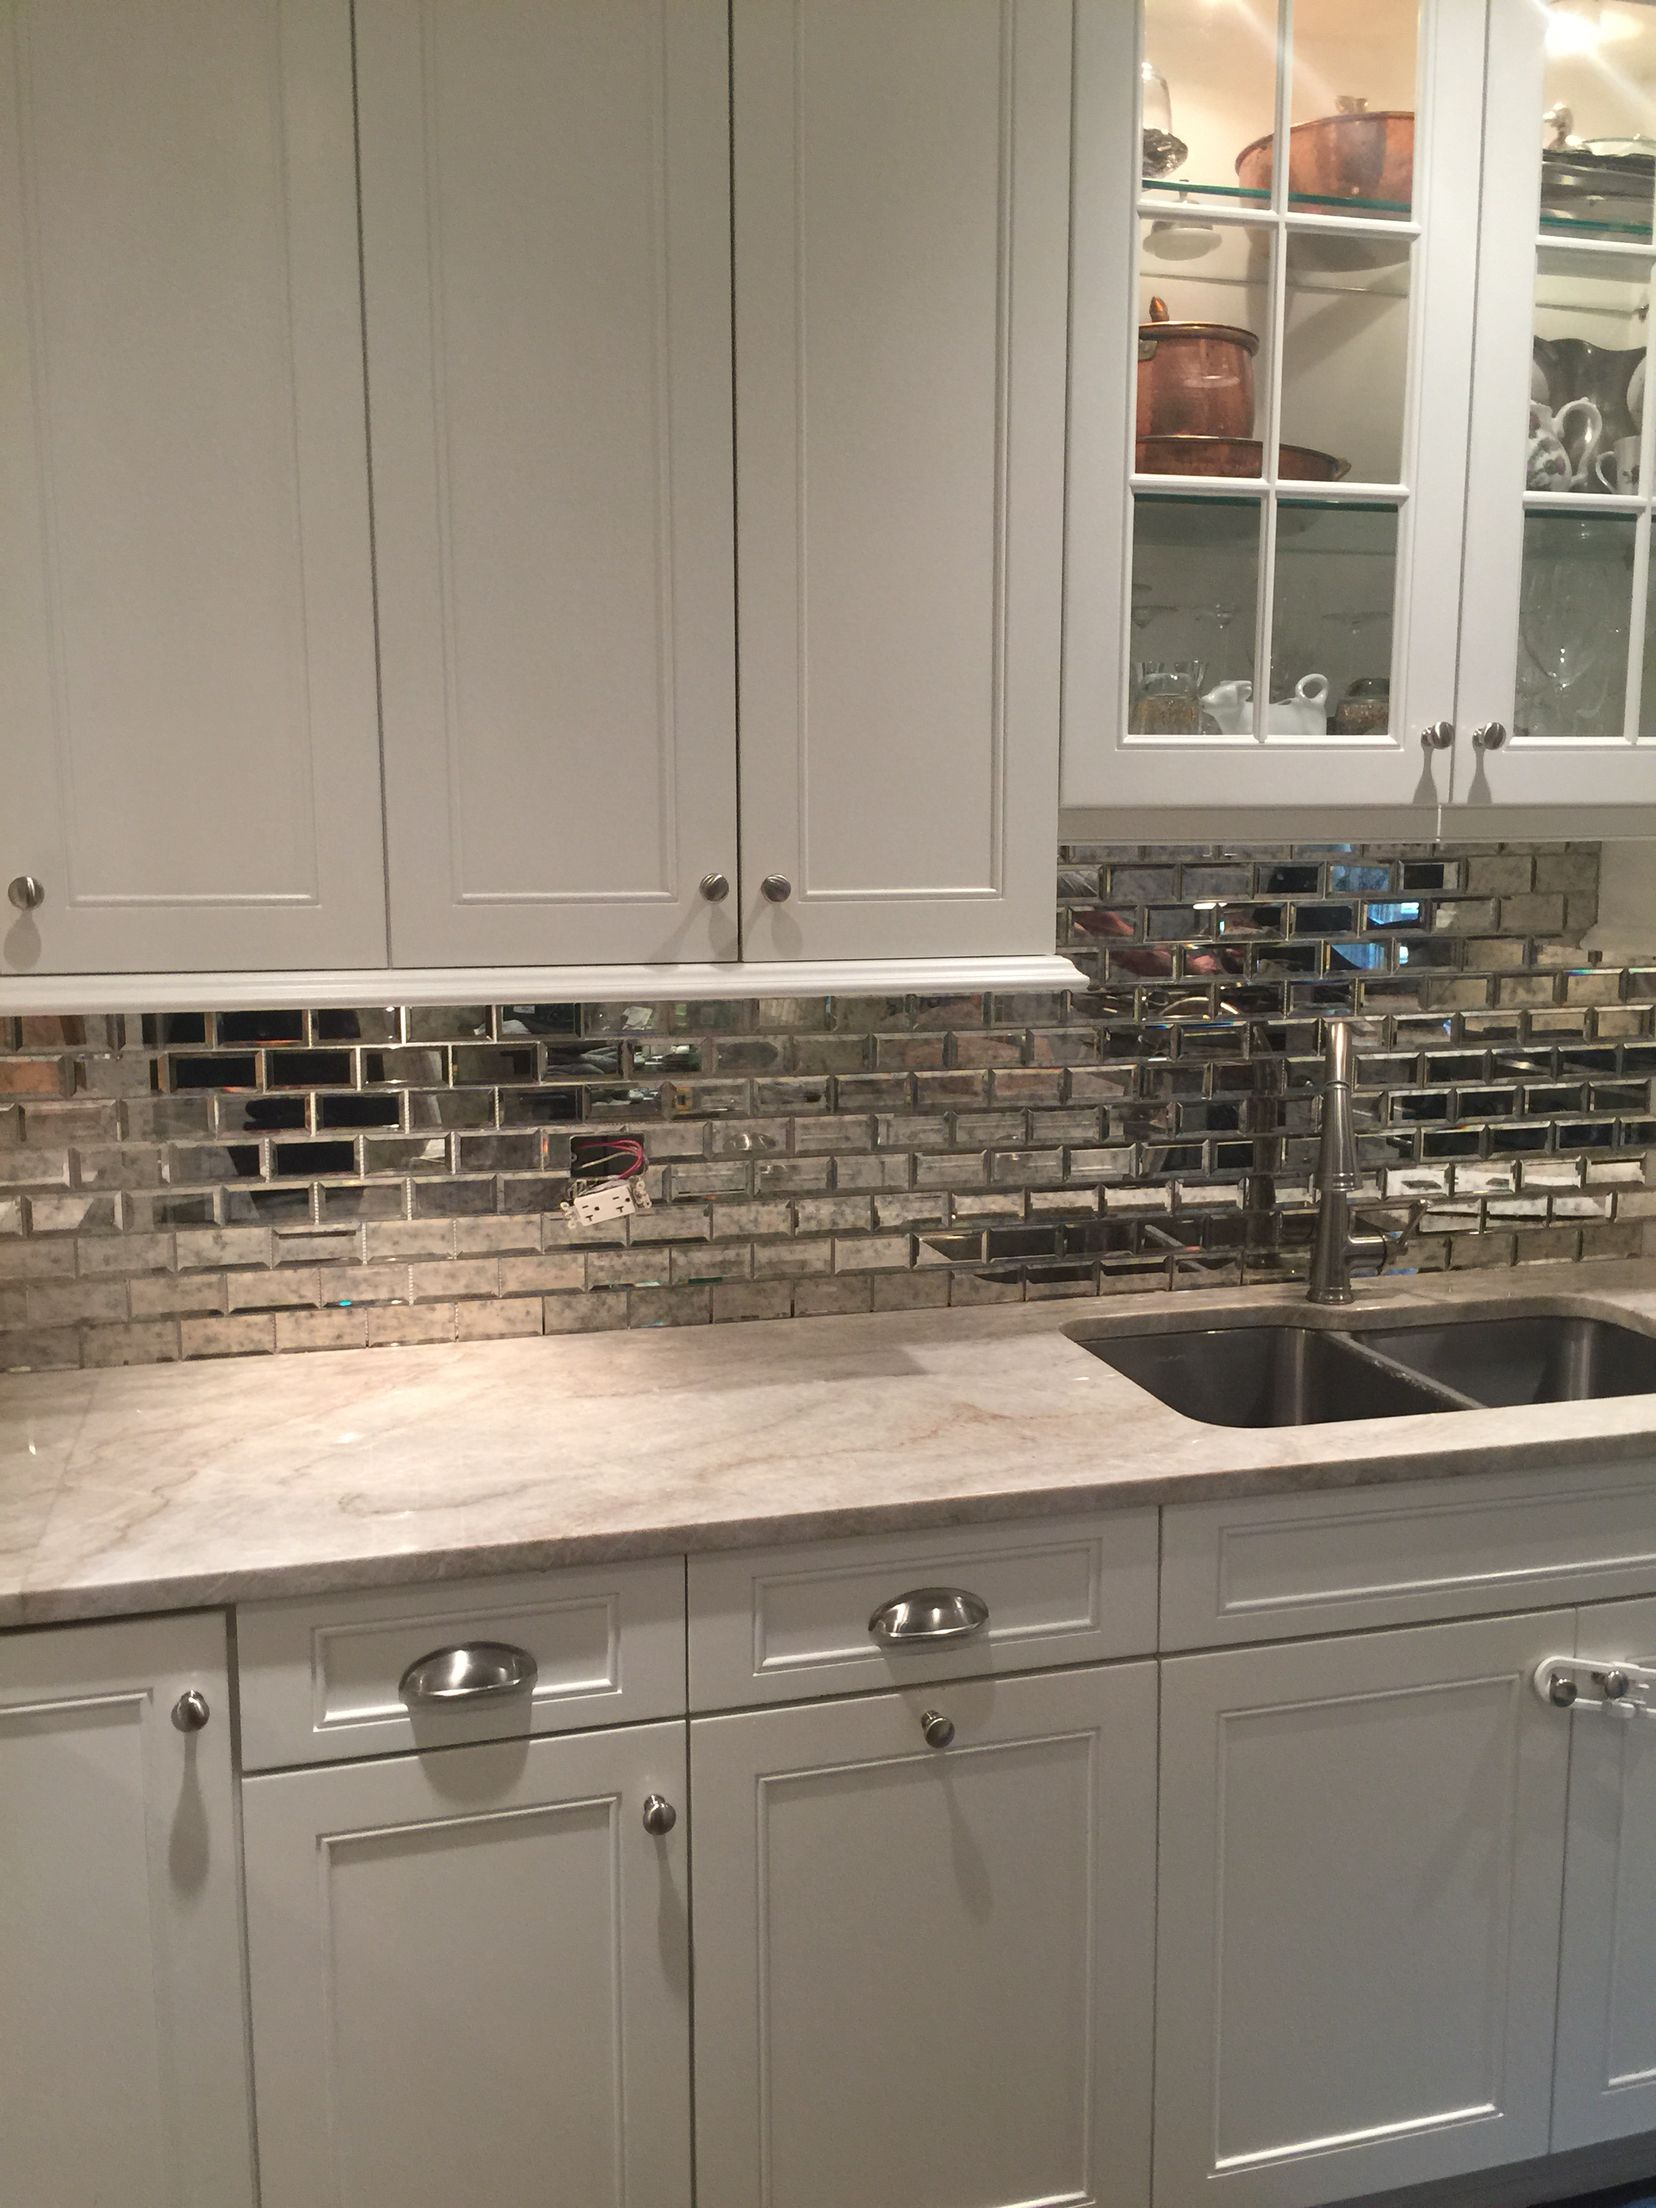 Taj Mahal Granite Kitchen Simply White Kitchen Cabinet Taj Mahal Quartzite Mirrored Subway